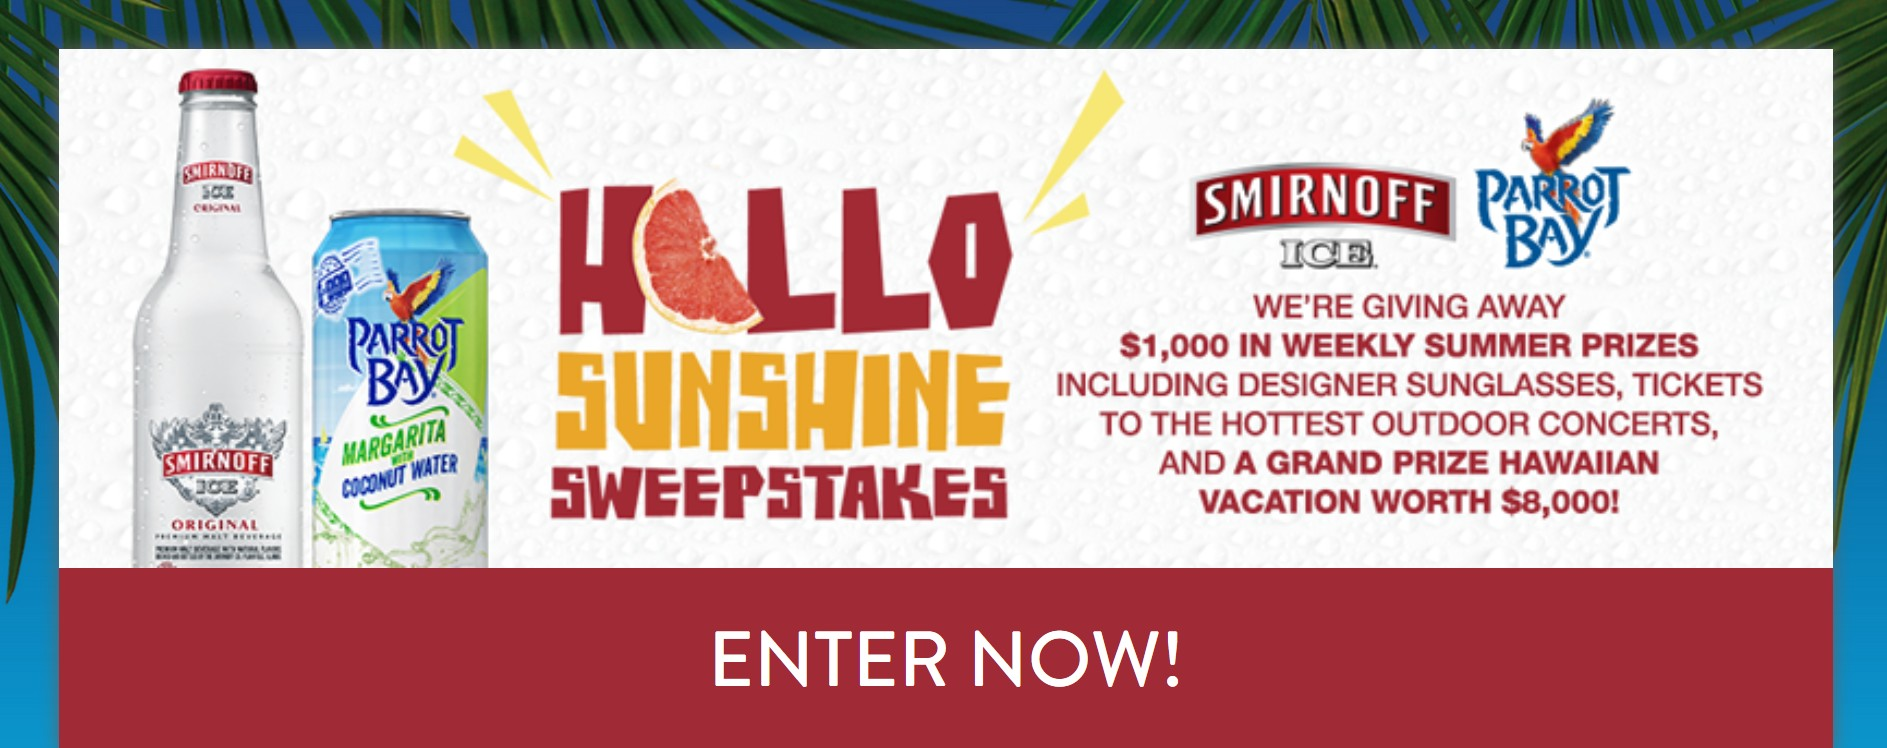 sweepstakes payouts prizes and giveaways 3323